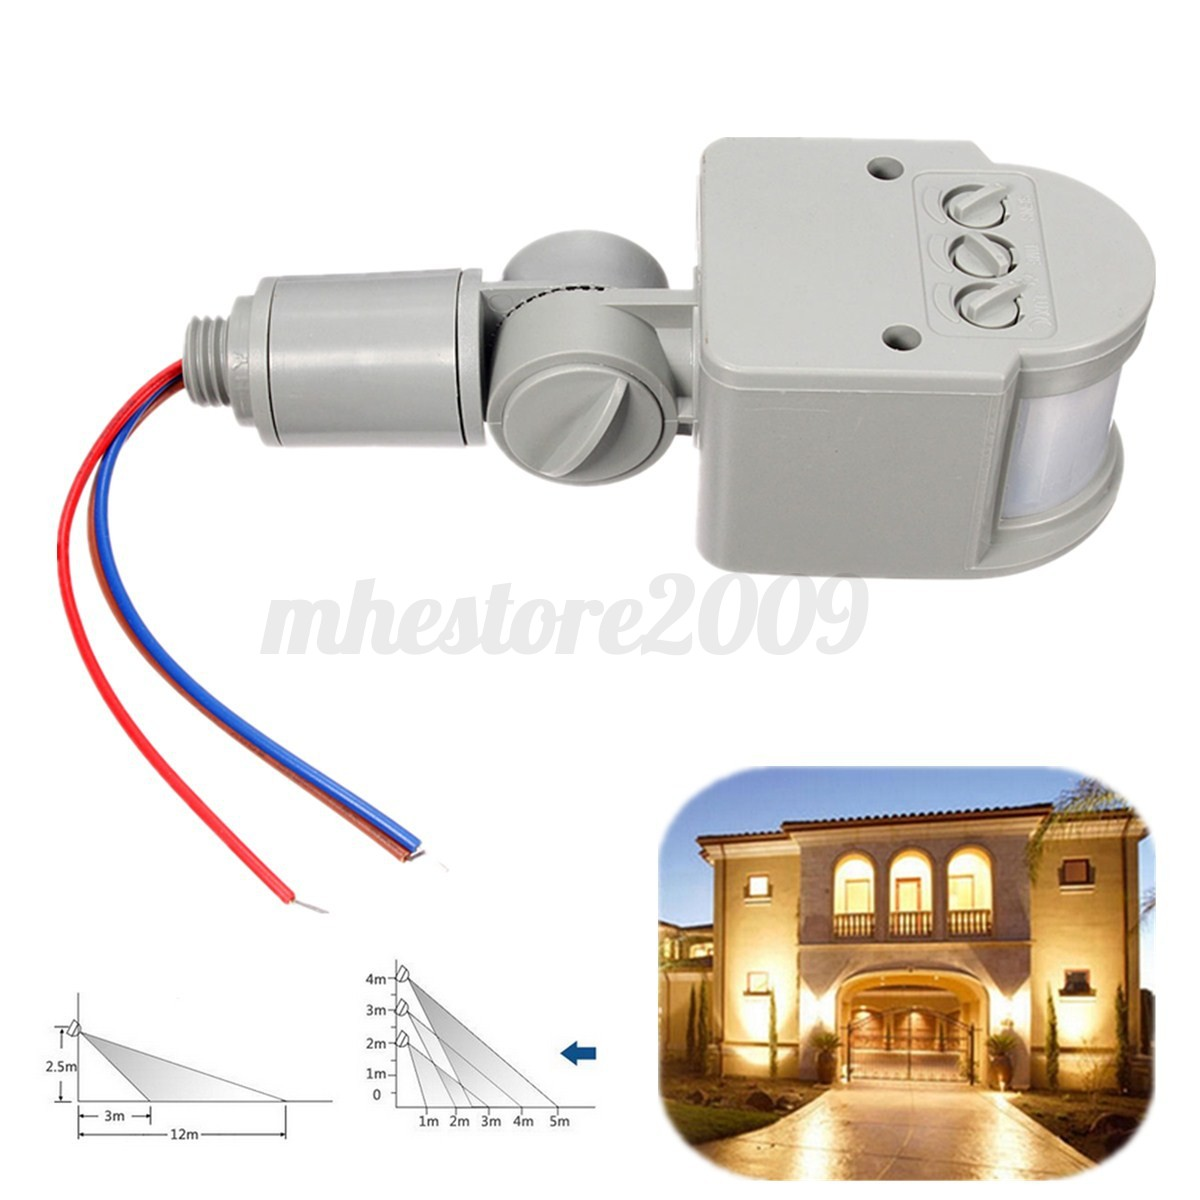 Outdoor motion sensor light adjustable for time and distance outdoor - 180 176 12m Outdoor Security Pir Infrared Motion Sensor